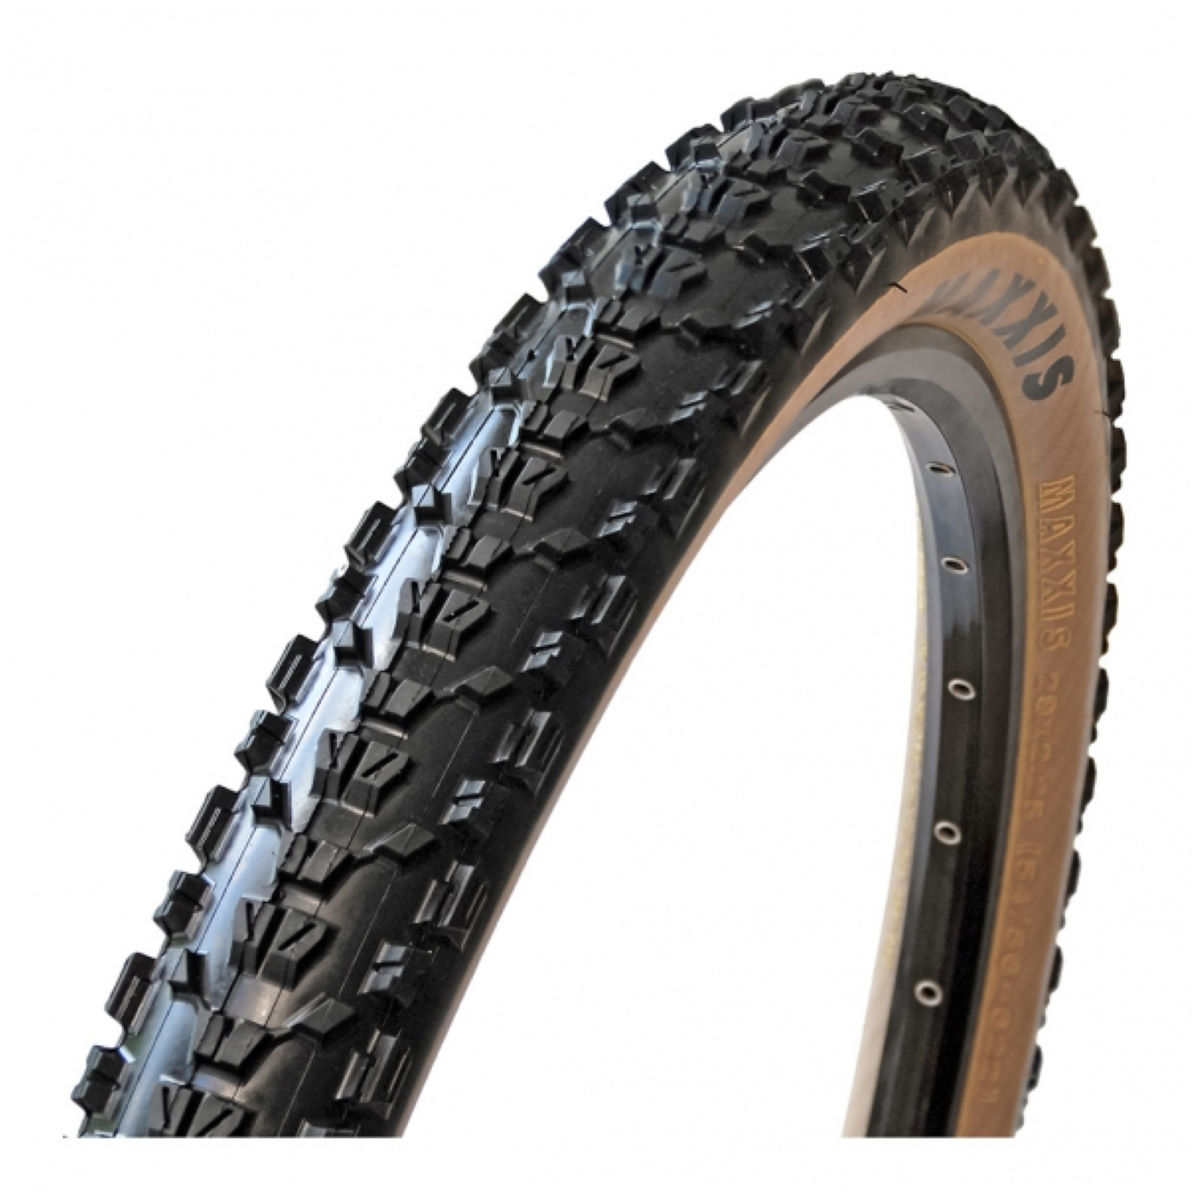 Maxxis Maxxis Ardent Skinwall MTB Tyre   Tyres